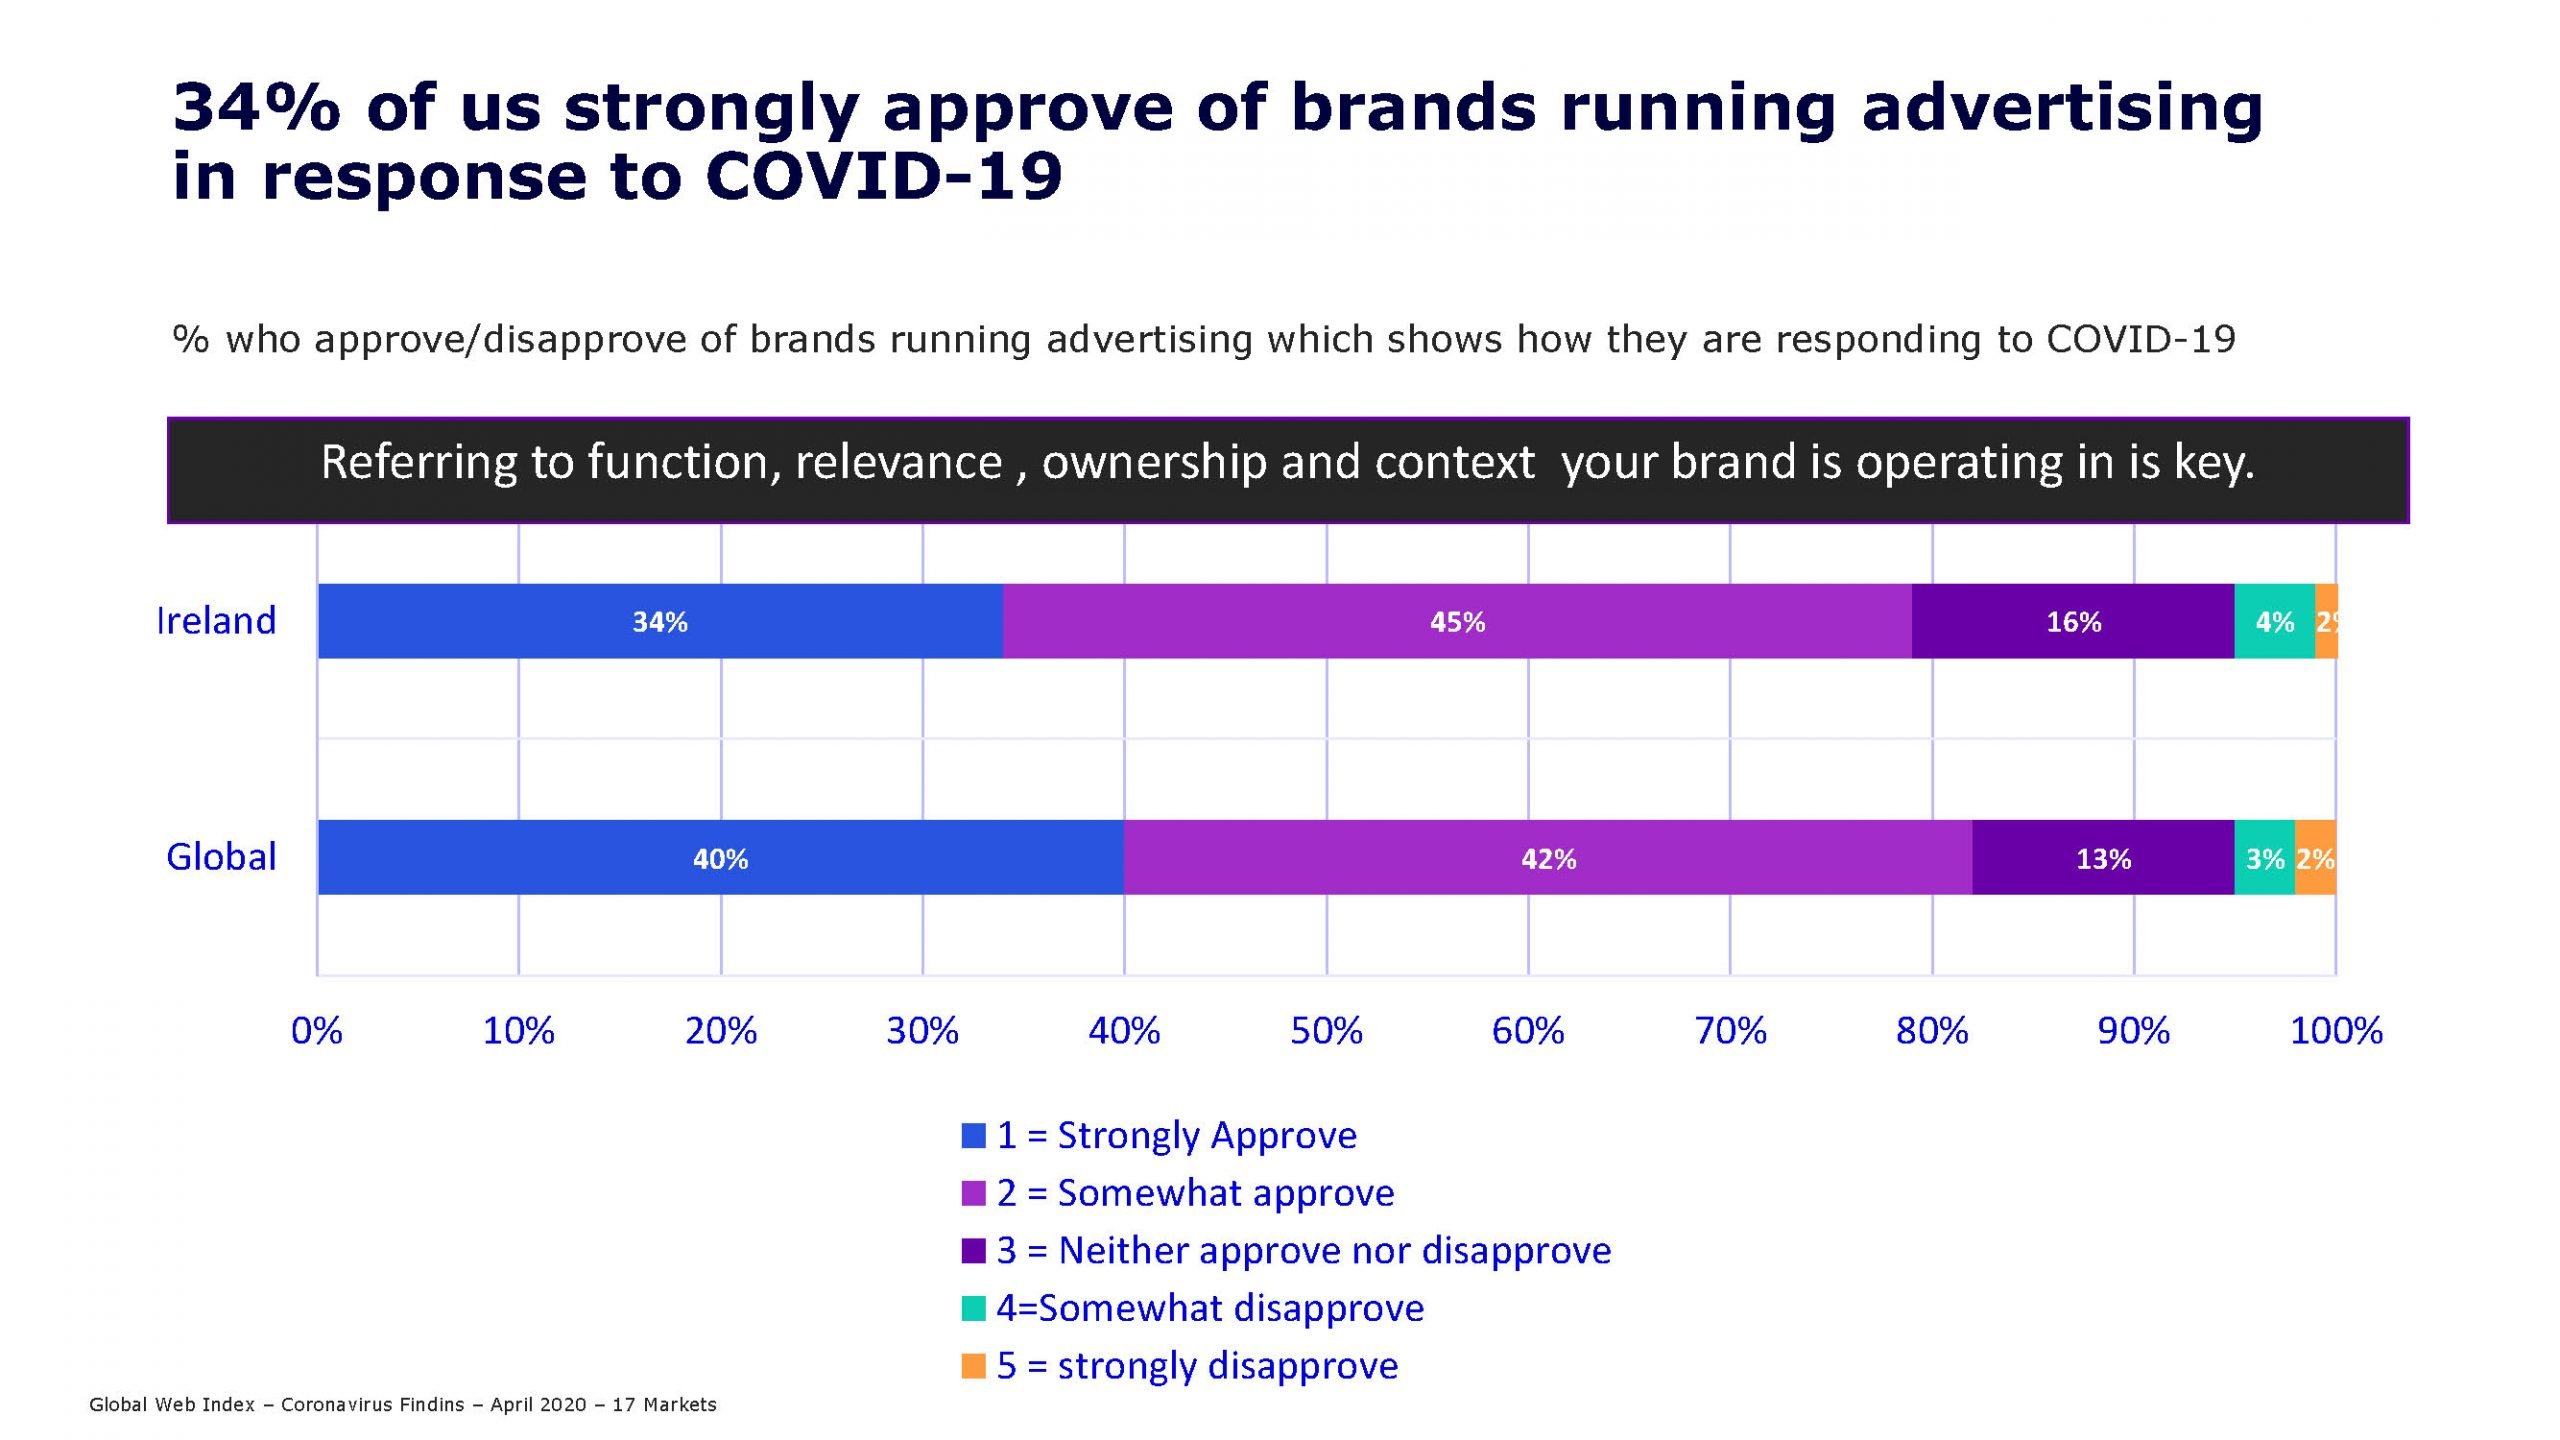 34% of us strongly approve of brands running advertising in response to Covid-19